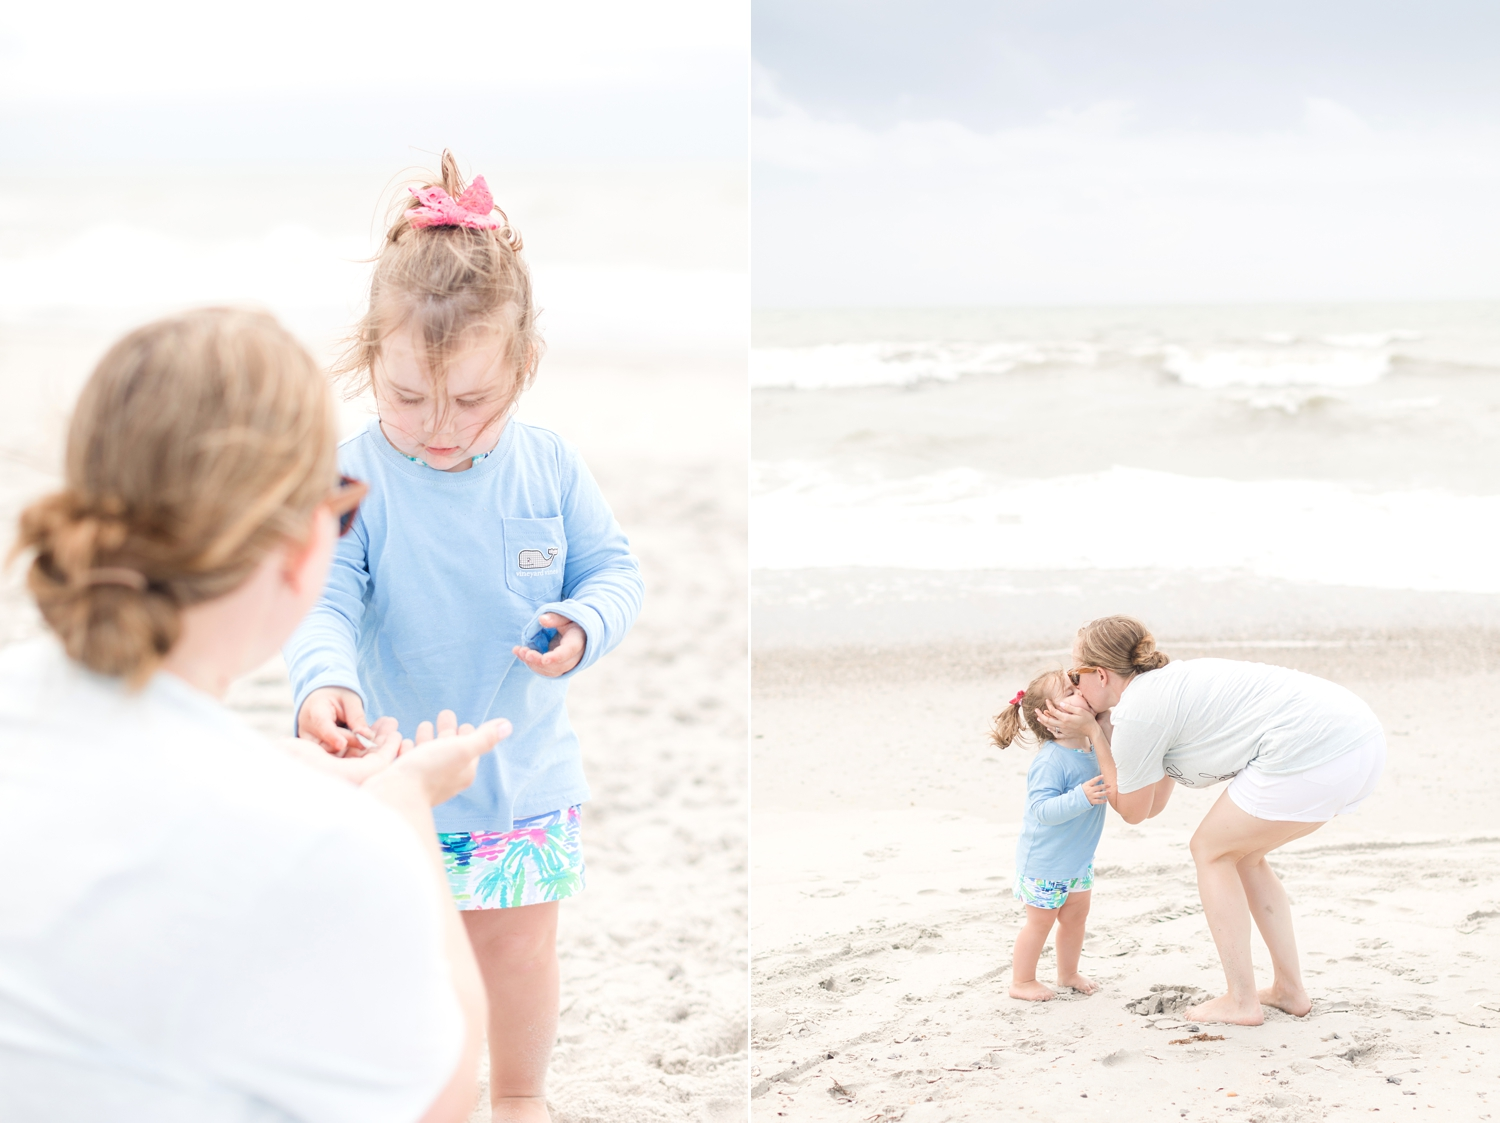 Searching for seashells with Payton was definitely one of my favorite parts of the trip!